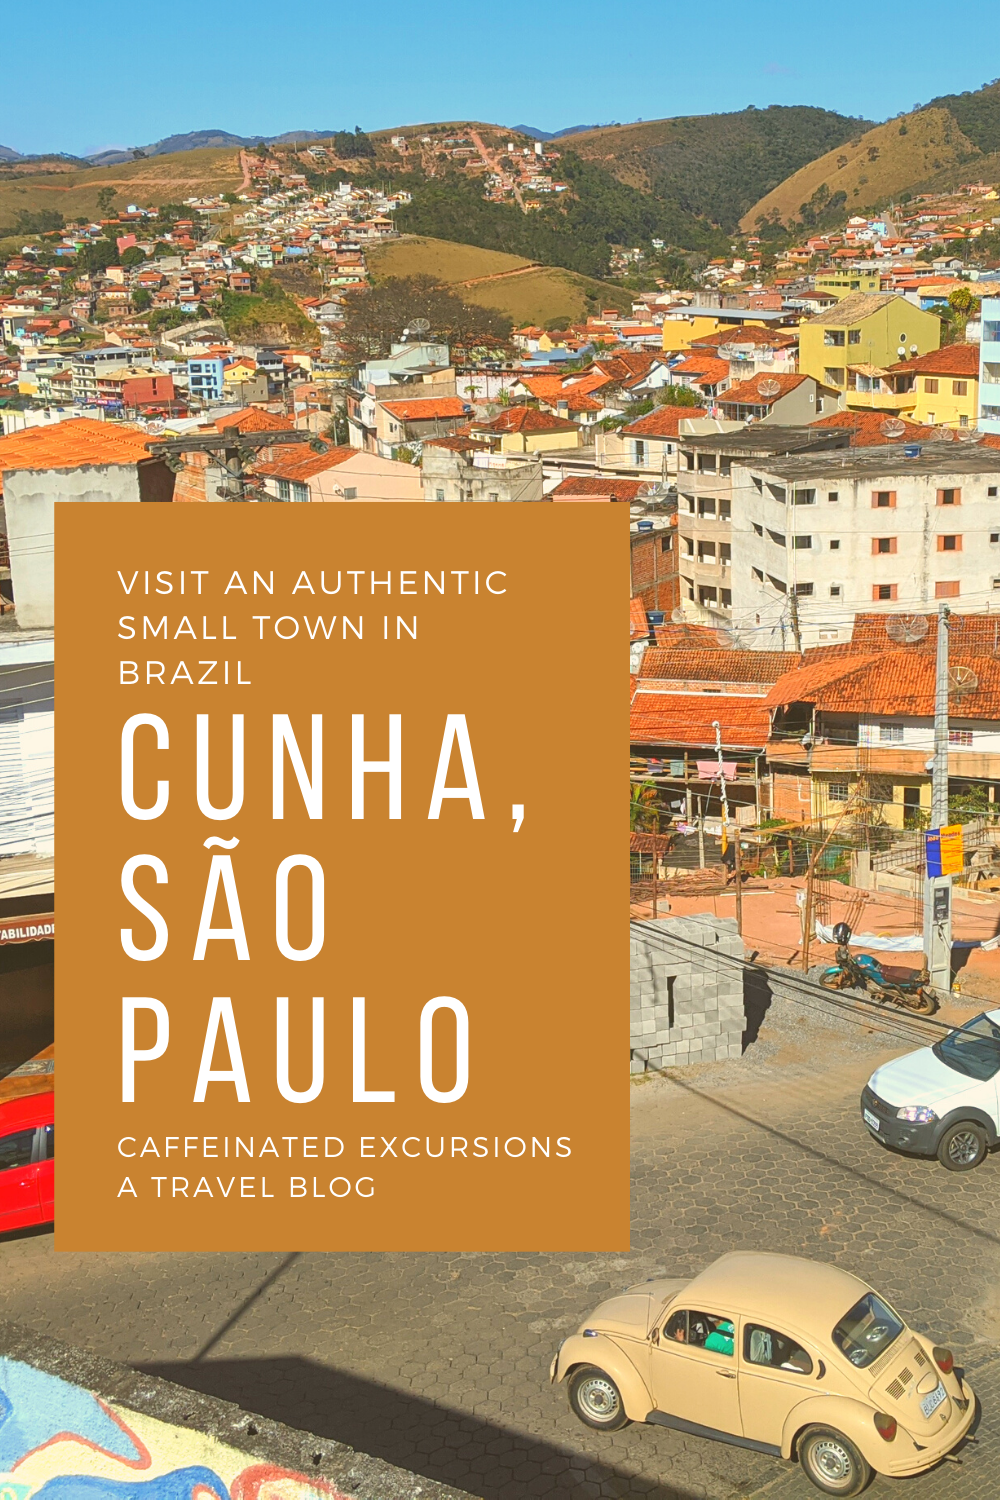 Check out this post to learn about an idyllic small town situated halfway between São Paulo and Rio de Janeiro! #cunha #cunhabrazil #cunhabrasil #cunhasp #cunhasaopaulo #cunhasãopaulo #cunhasaopaulobrasil #cidadedecunha #cunhense #visitbrazil #travelbrazil #braziltourism #smalltowntravel #visitsmalltowns #hiddengems #travelsouthamerica #southamericatravel #brazil #brasil #estadodesaopaulo #estadodesãopaulo #saopaulostate #sãopaulostate #travelblog #travelblogs #caffeinatedexcursions